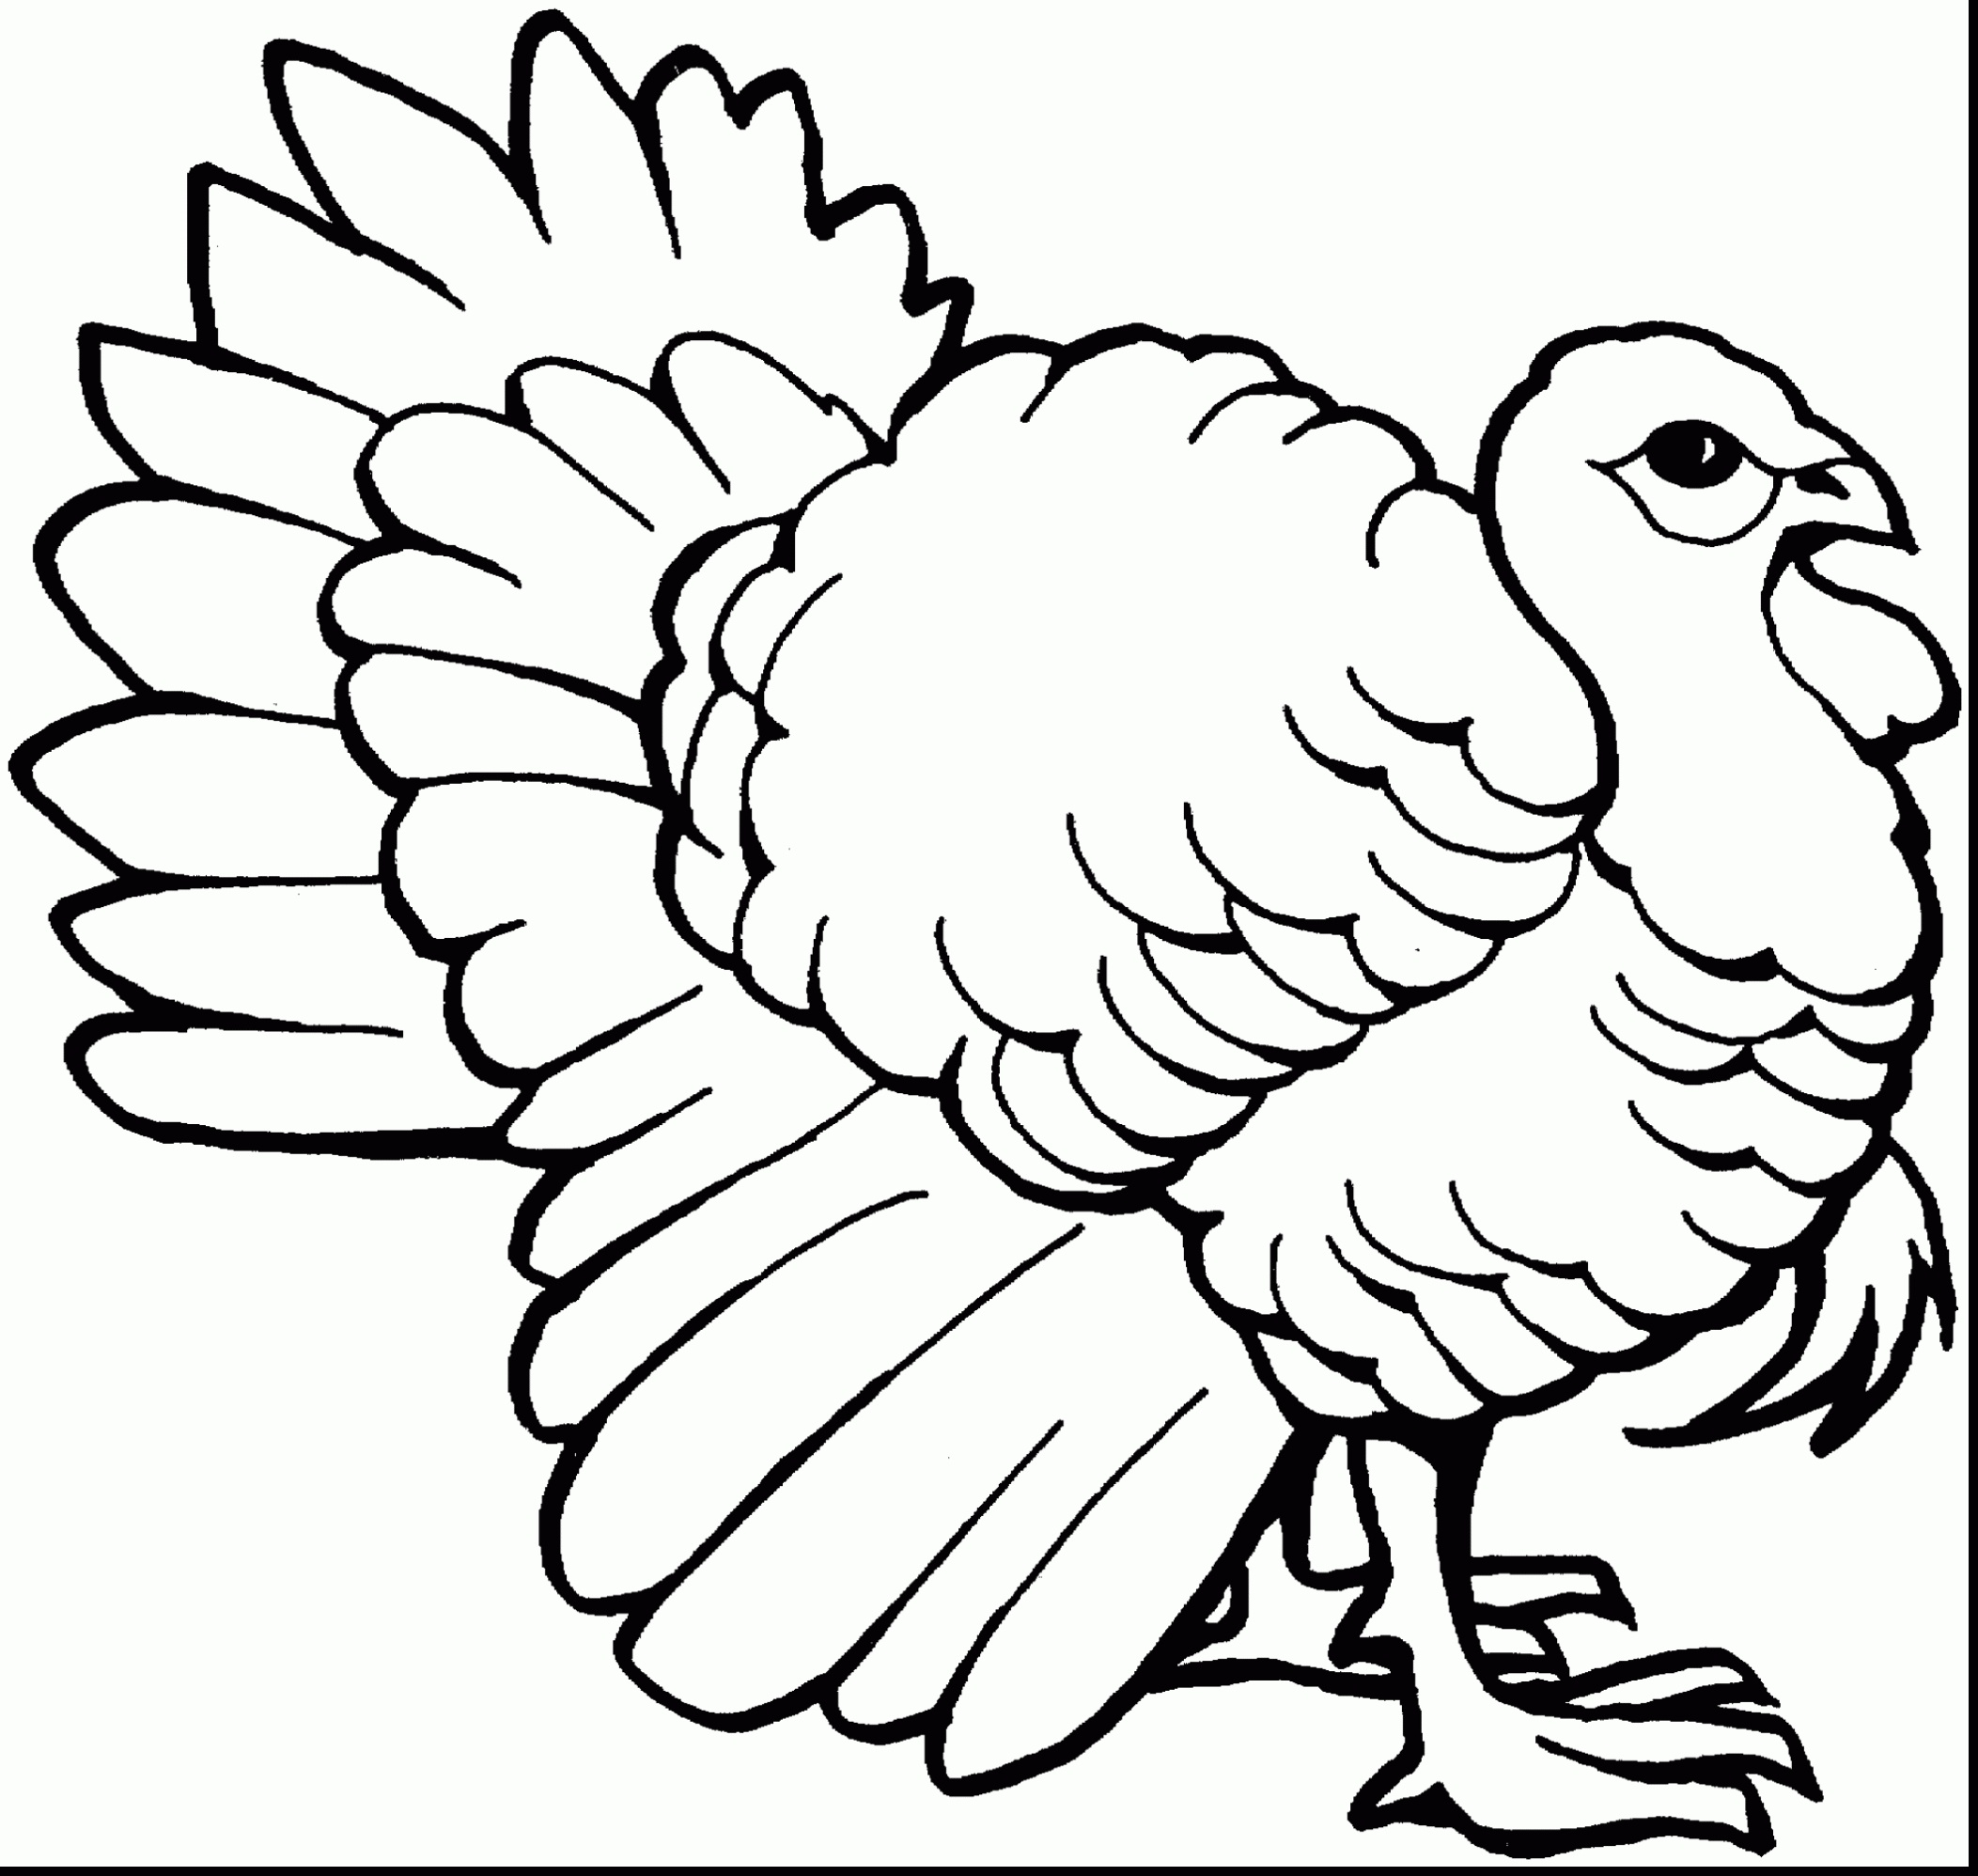 Coloring Ideas : Kidsoring Turkey Page Thanksgiving Books For First - Free Printable Coloring Pages For Preschoolers